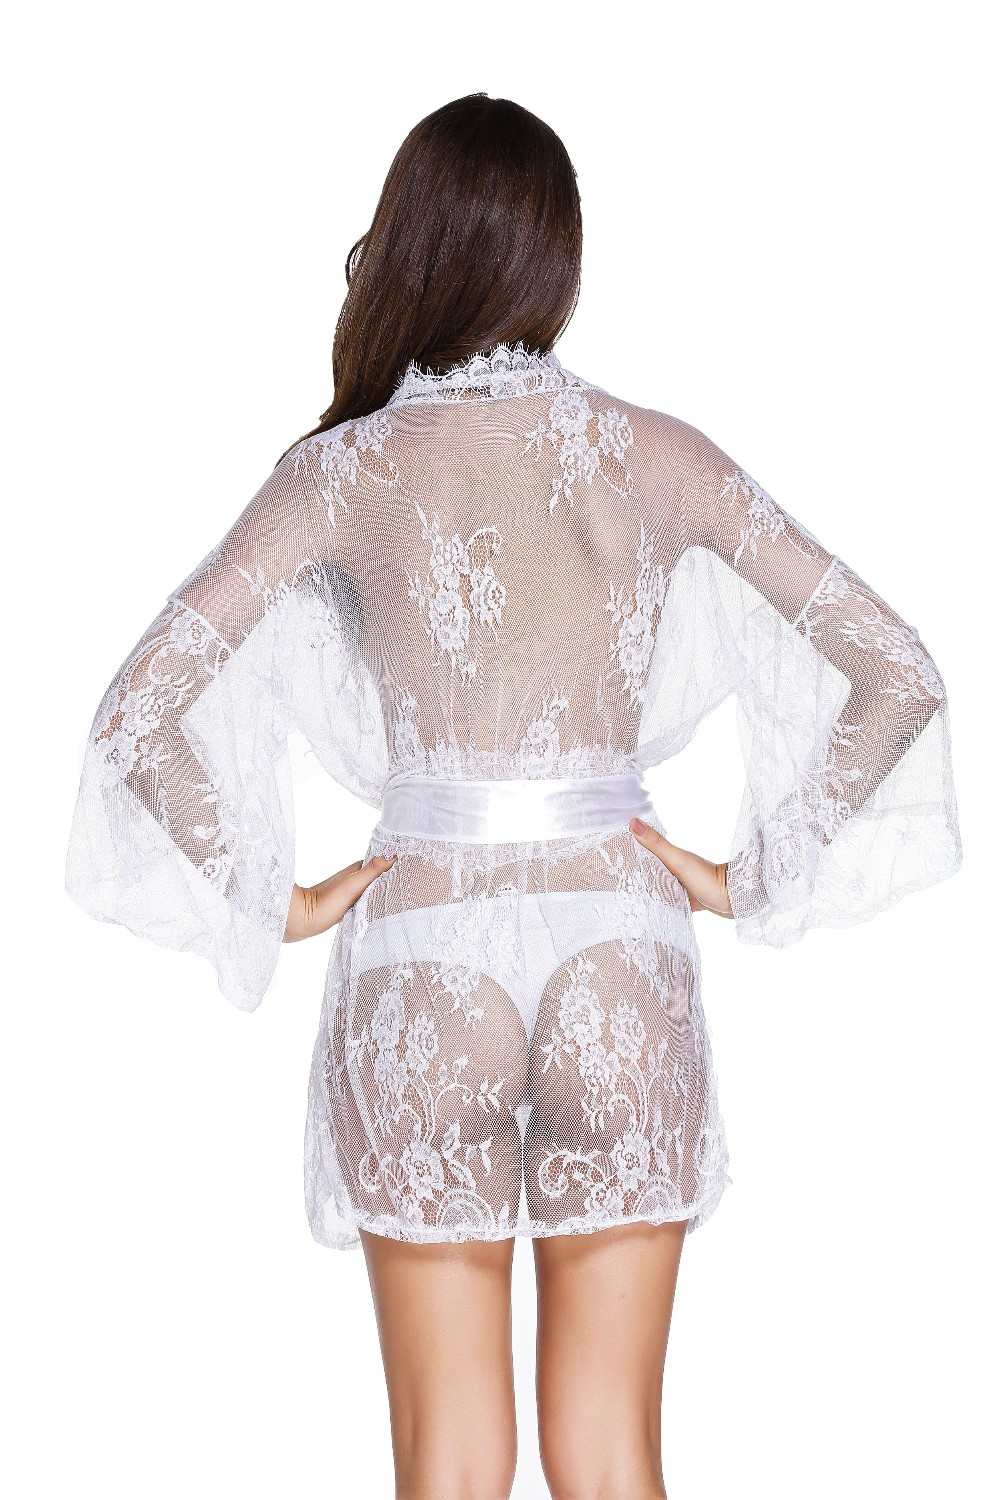 White-Belted-Lace-Kimono-Nightwear-LC21998-1-7